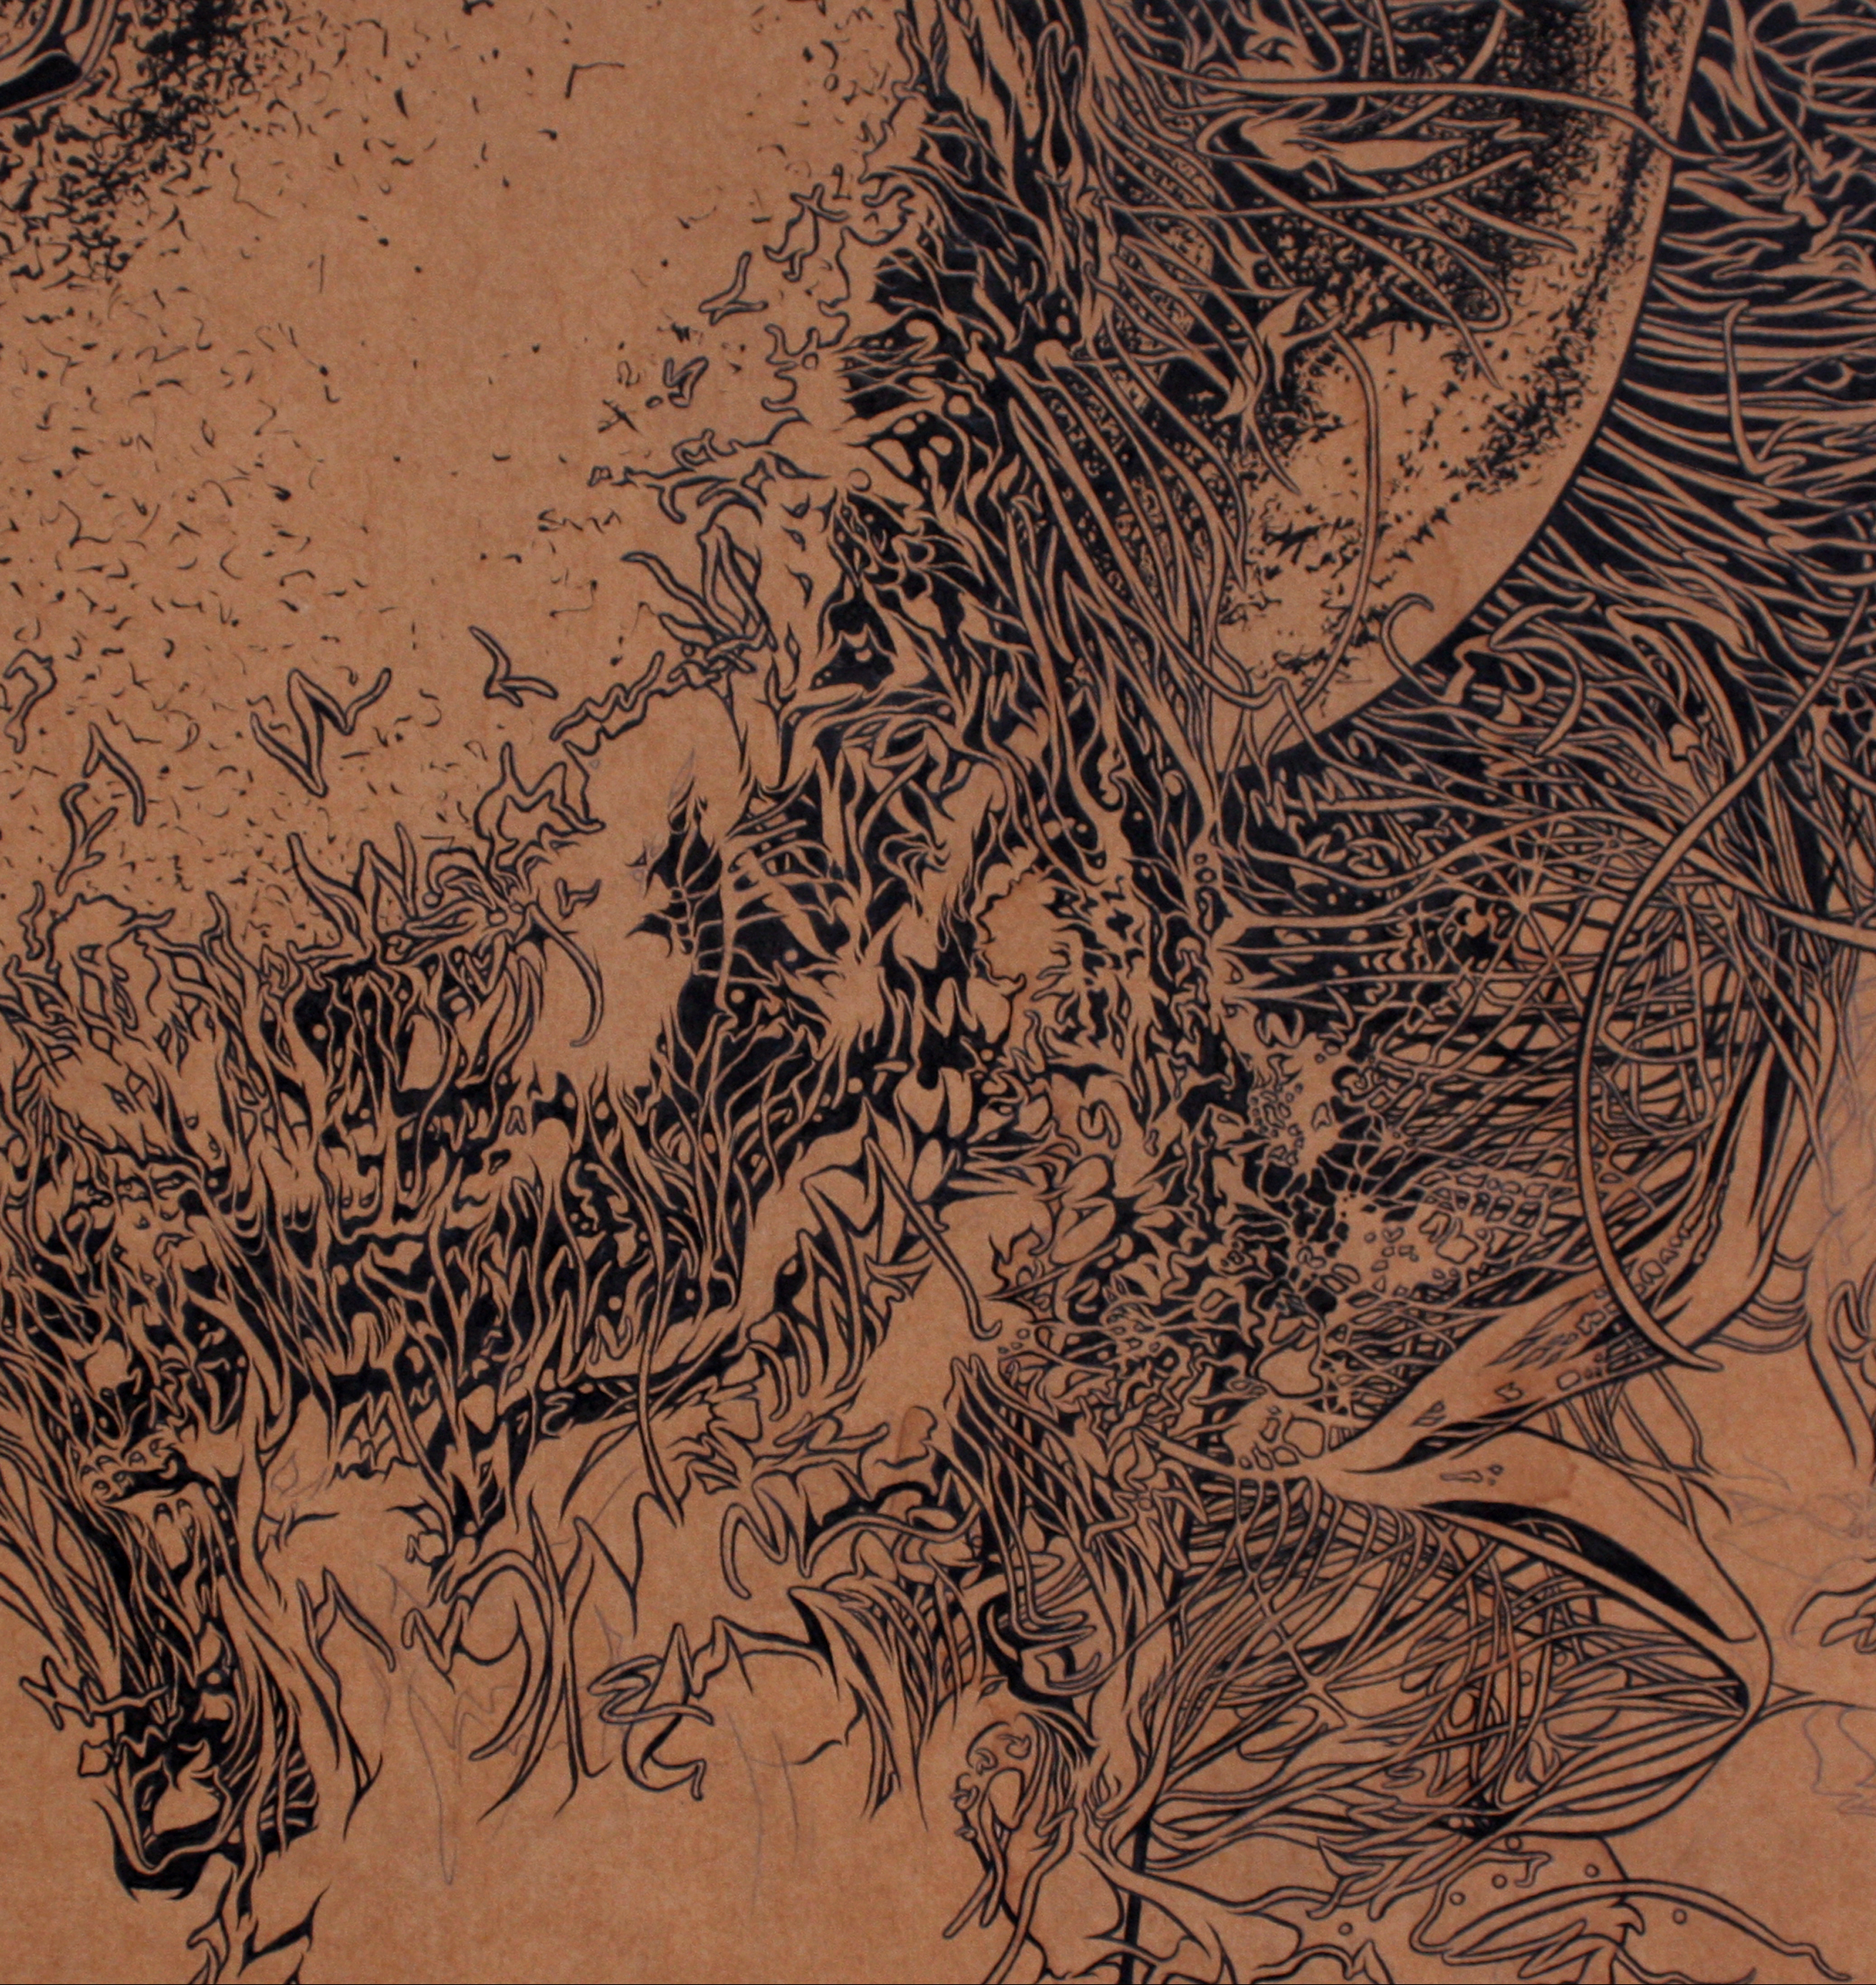 artwork by David Le Fleming, ink on board - thin thick thin technique